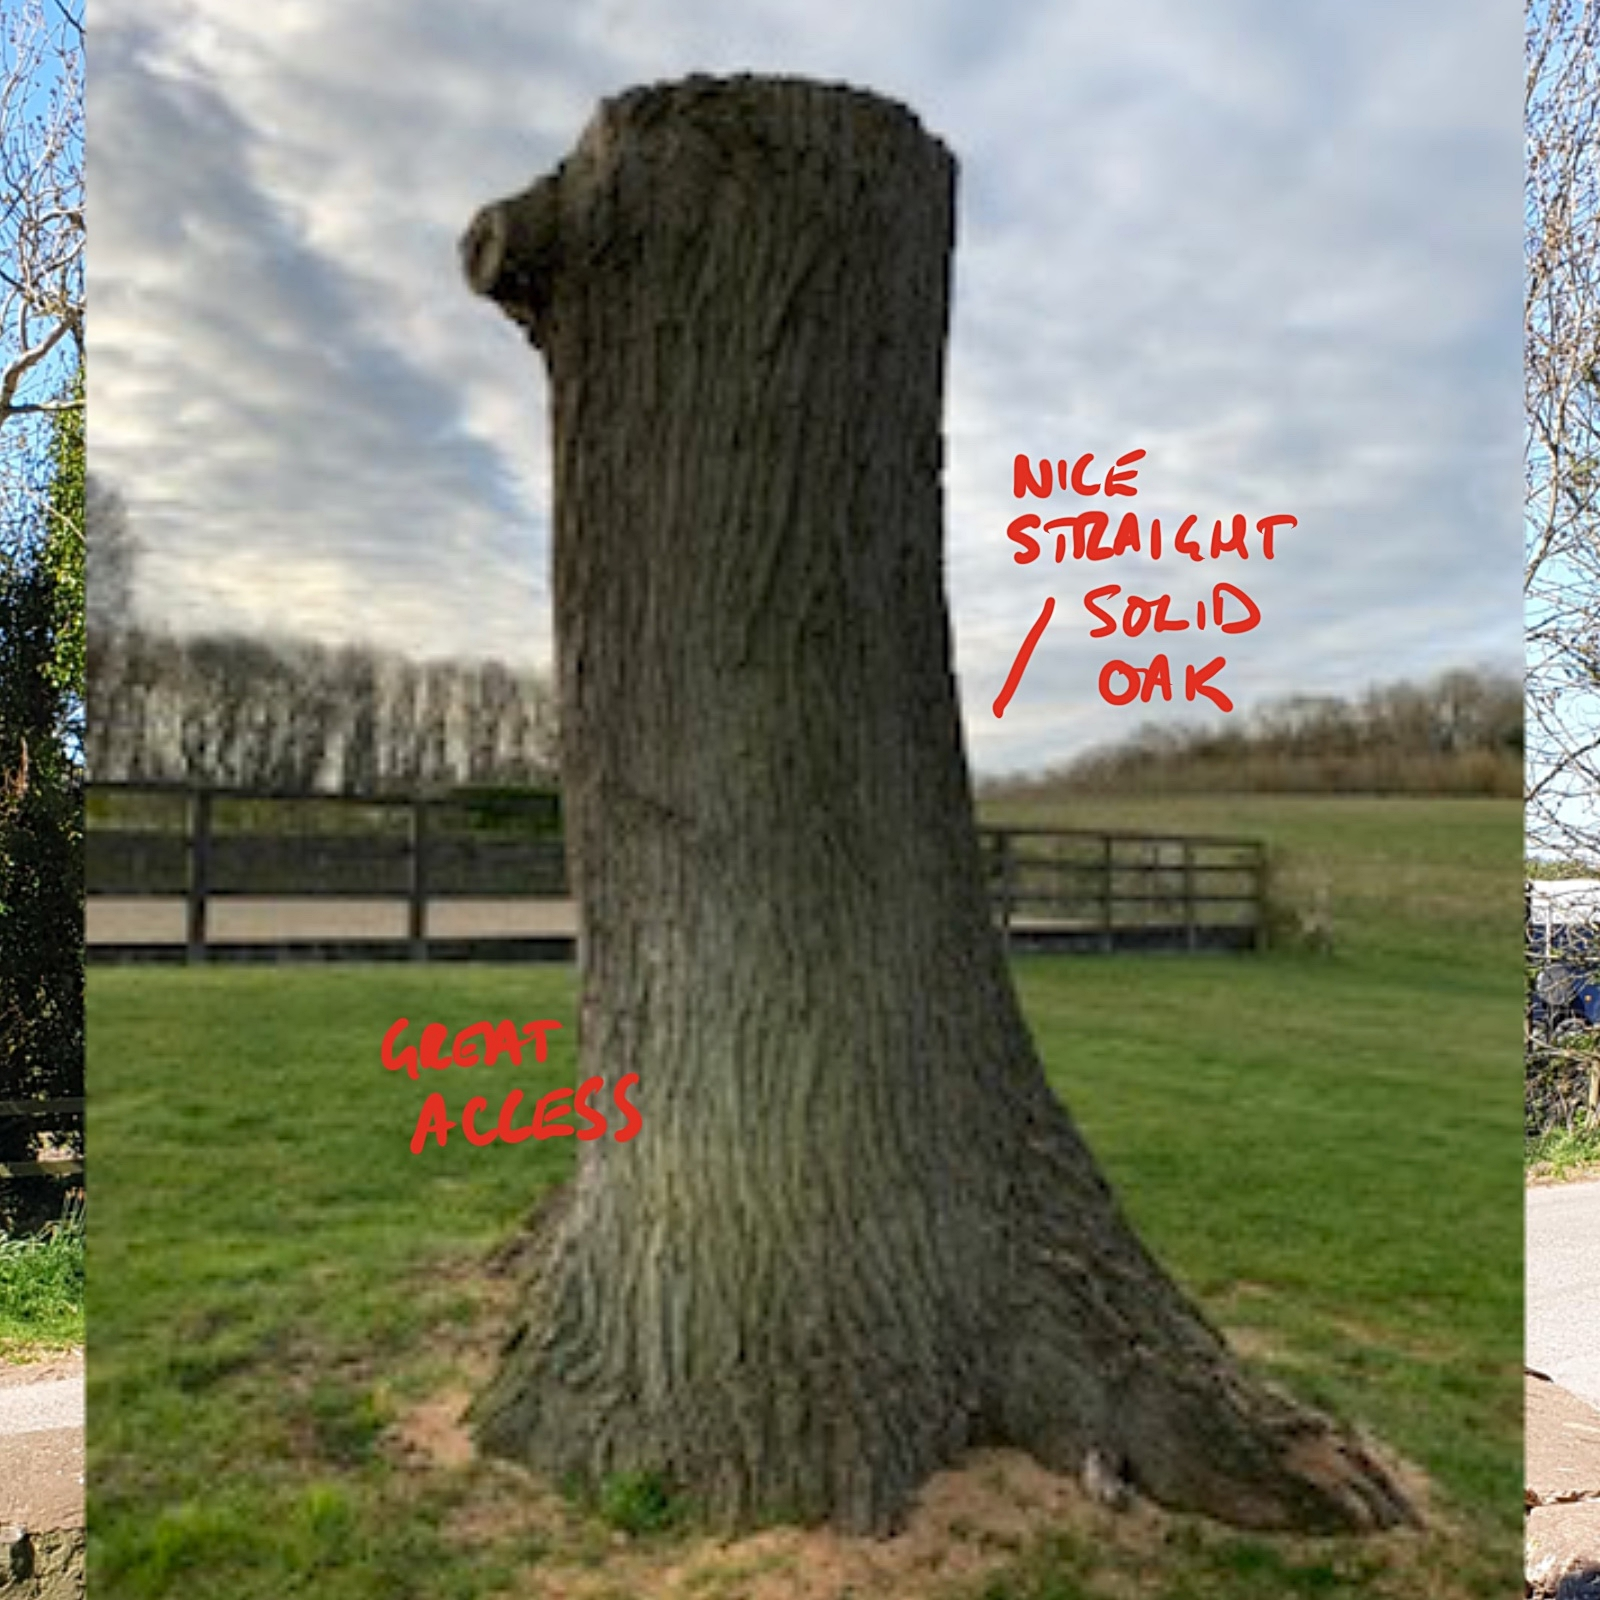 Example of a tree suitable for a tree carving sculpture courtesy of simon o'rourke